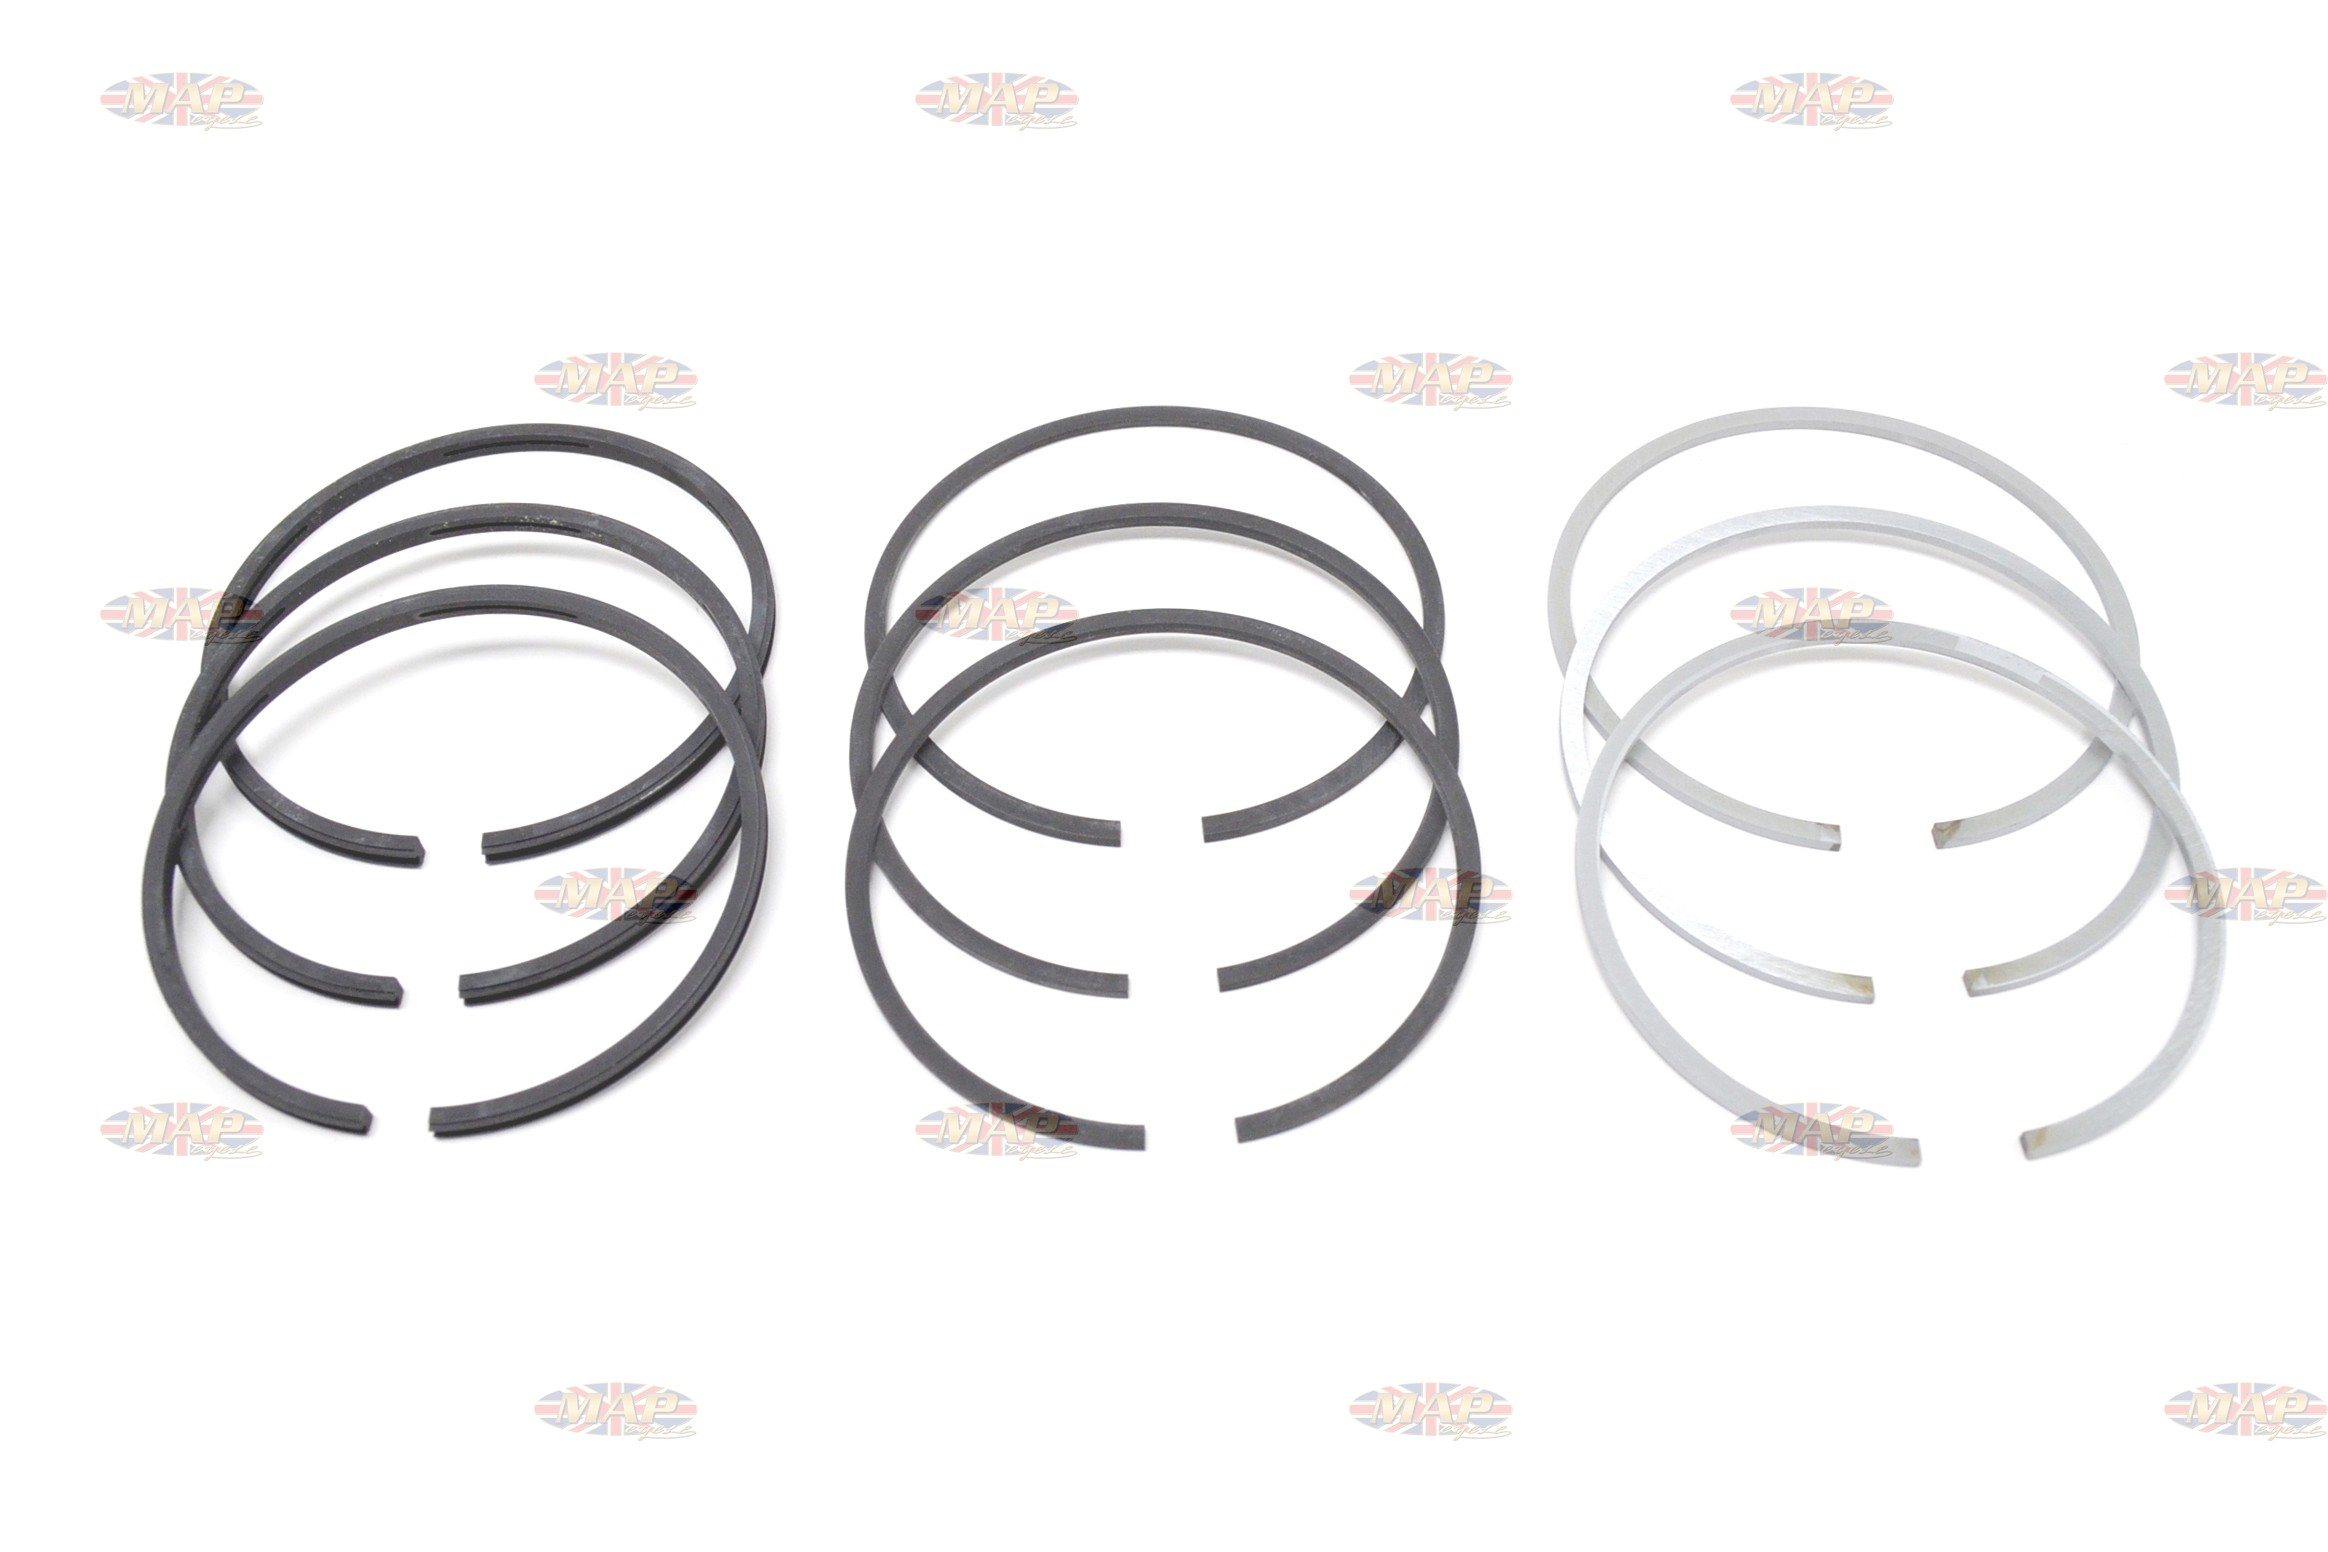 Triumph & BSA IIIs Piston Rings R23020